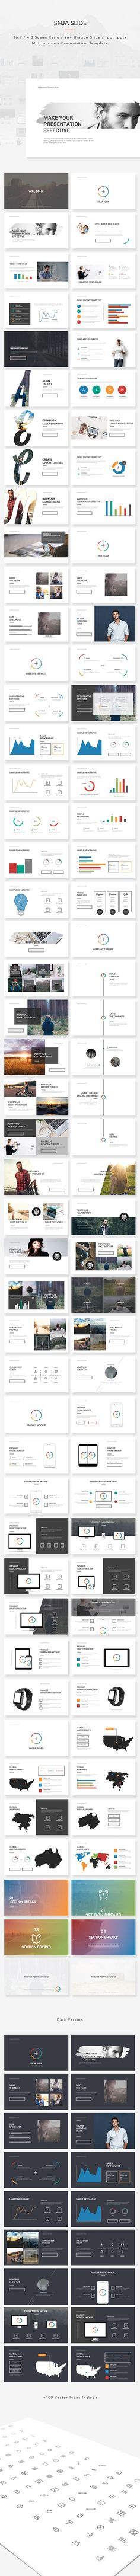 c8db5096f8392 Buy SNJA Powerpoint Presentation by kylyman on GraphicRiver. SNJA SLIDE  Powerpoint Presentation Perfect Presentation Template for your business or  personal ...